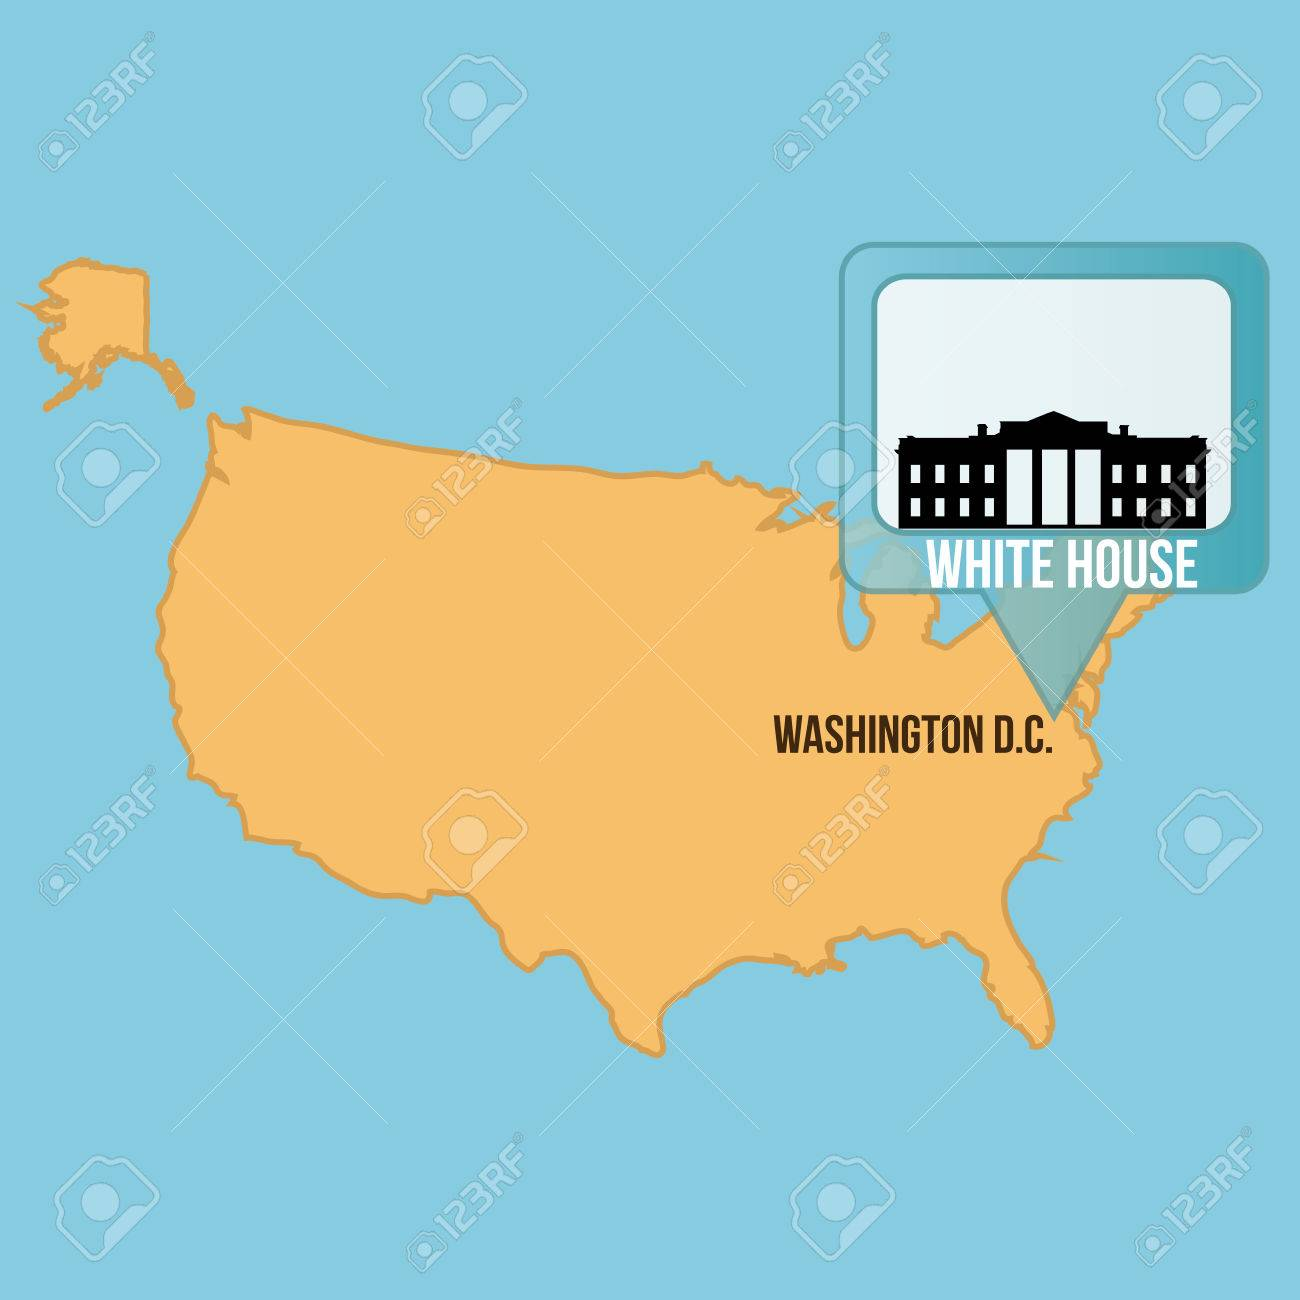 White House United States USA Map Nonanet English Exercises - White house on us map